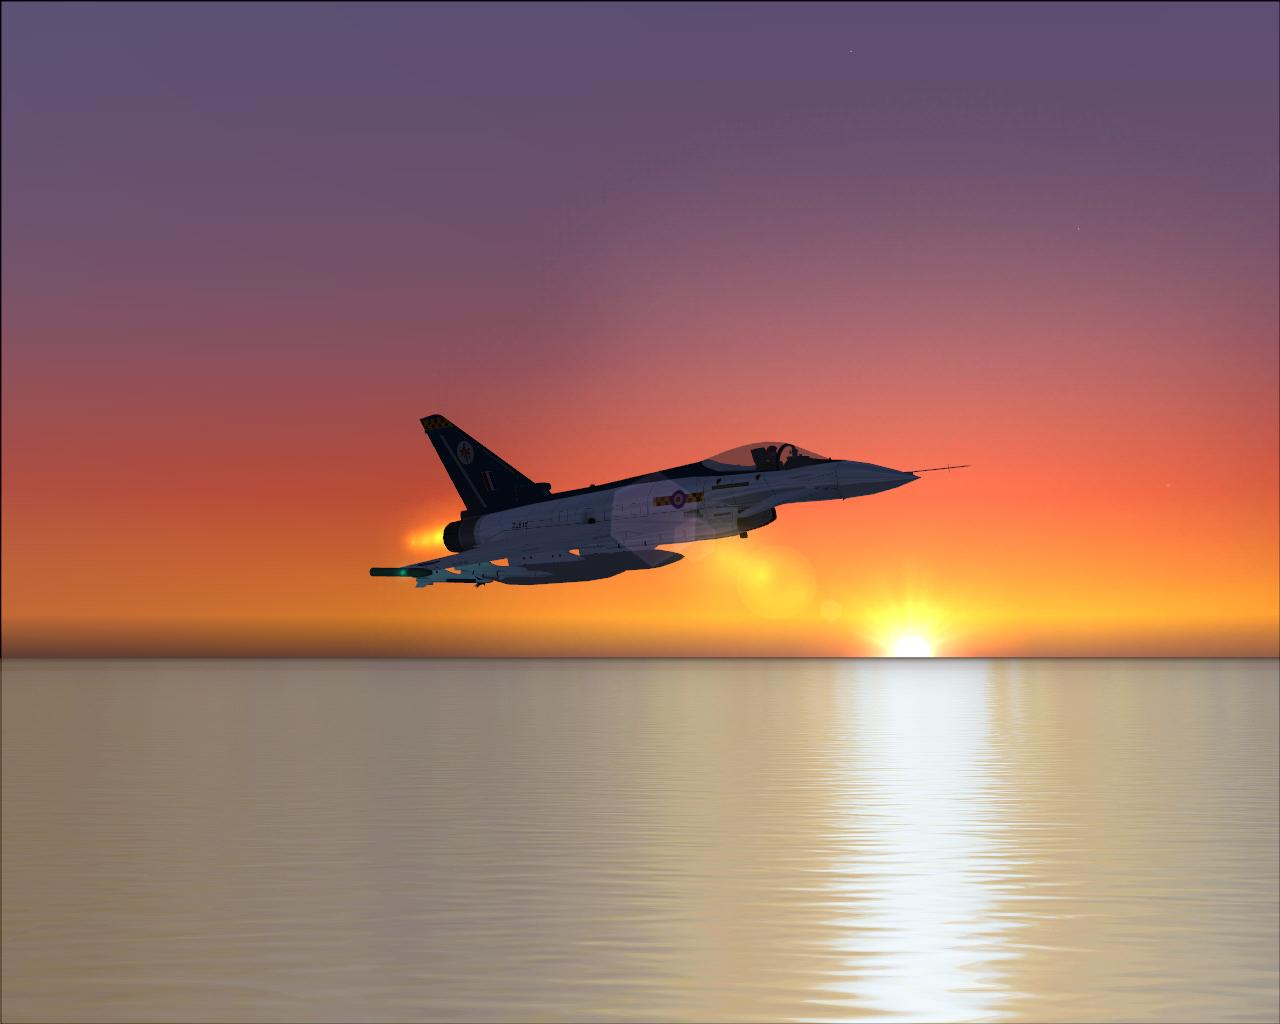 DSB Design Eurofighter Typhoon over the sea near Princess Juliana at Dusk. Oh how lovely - Photo 3481